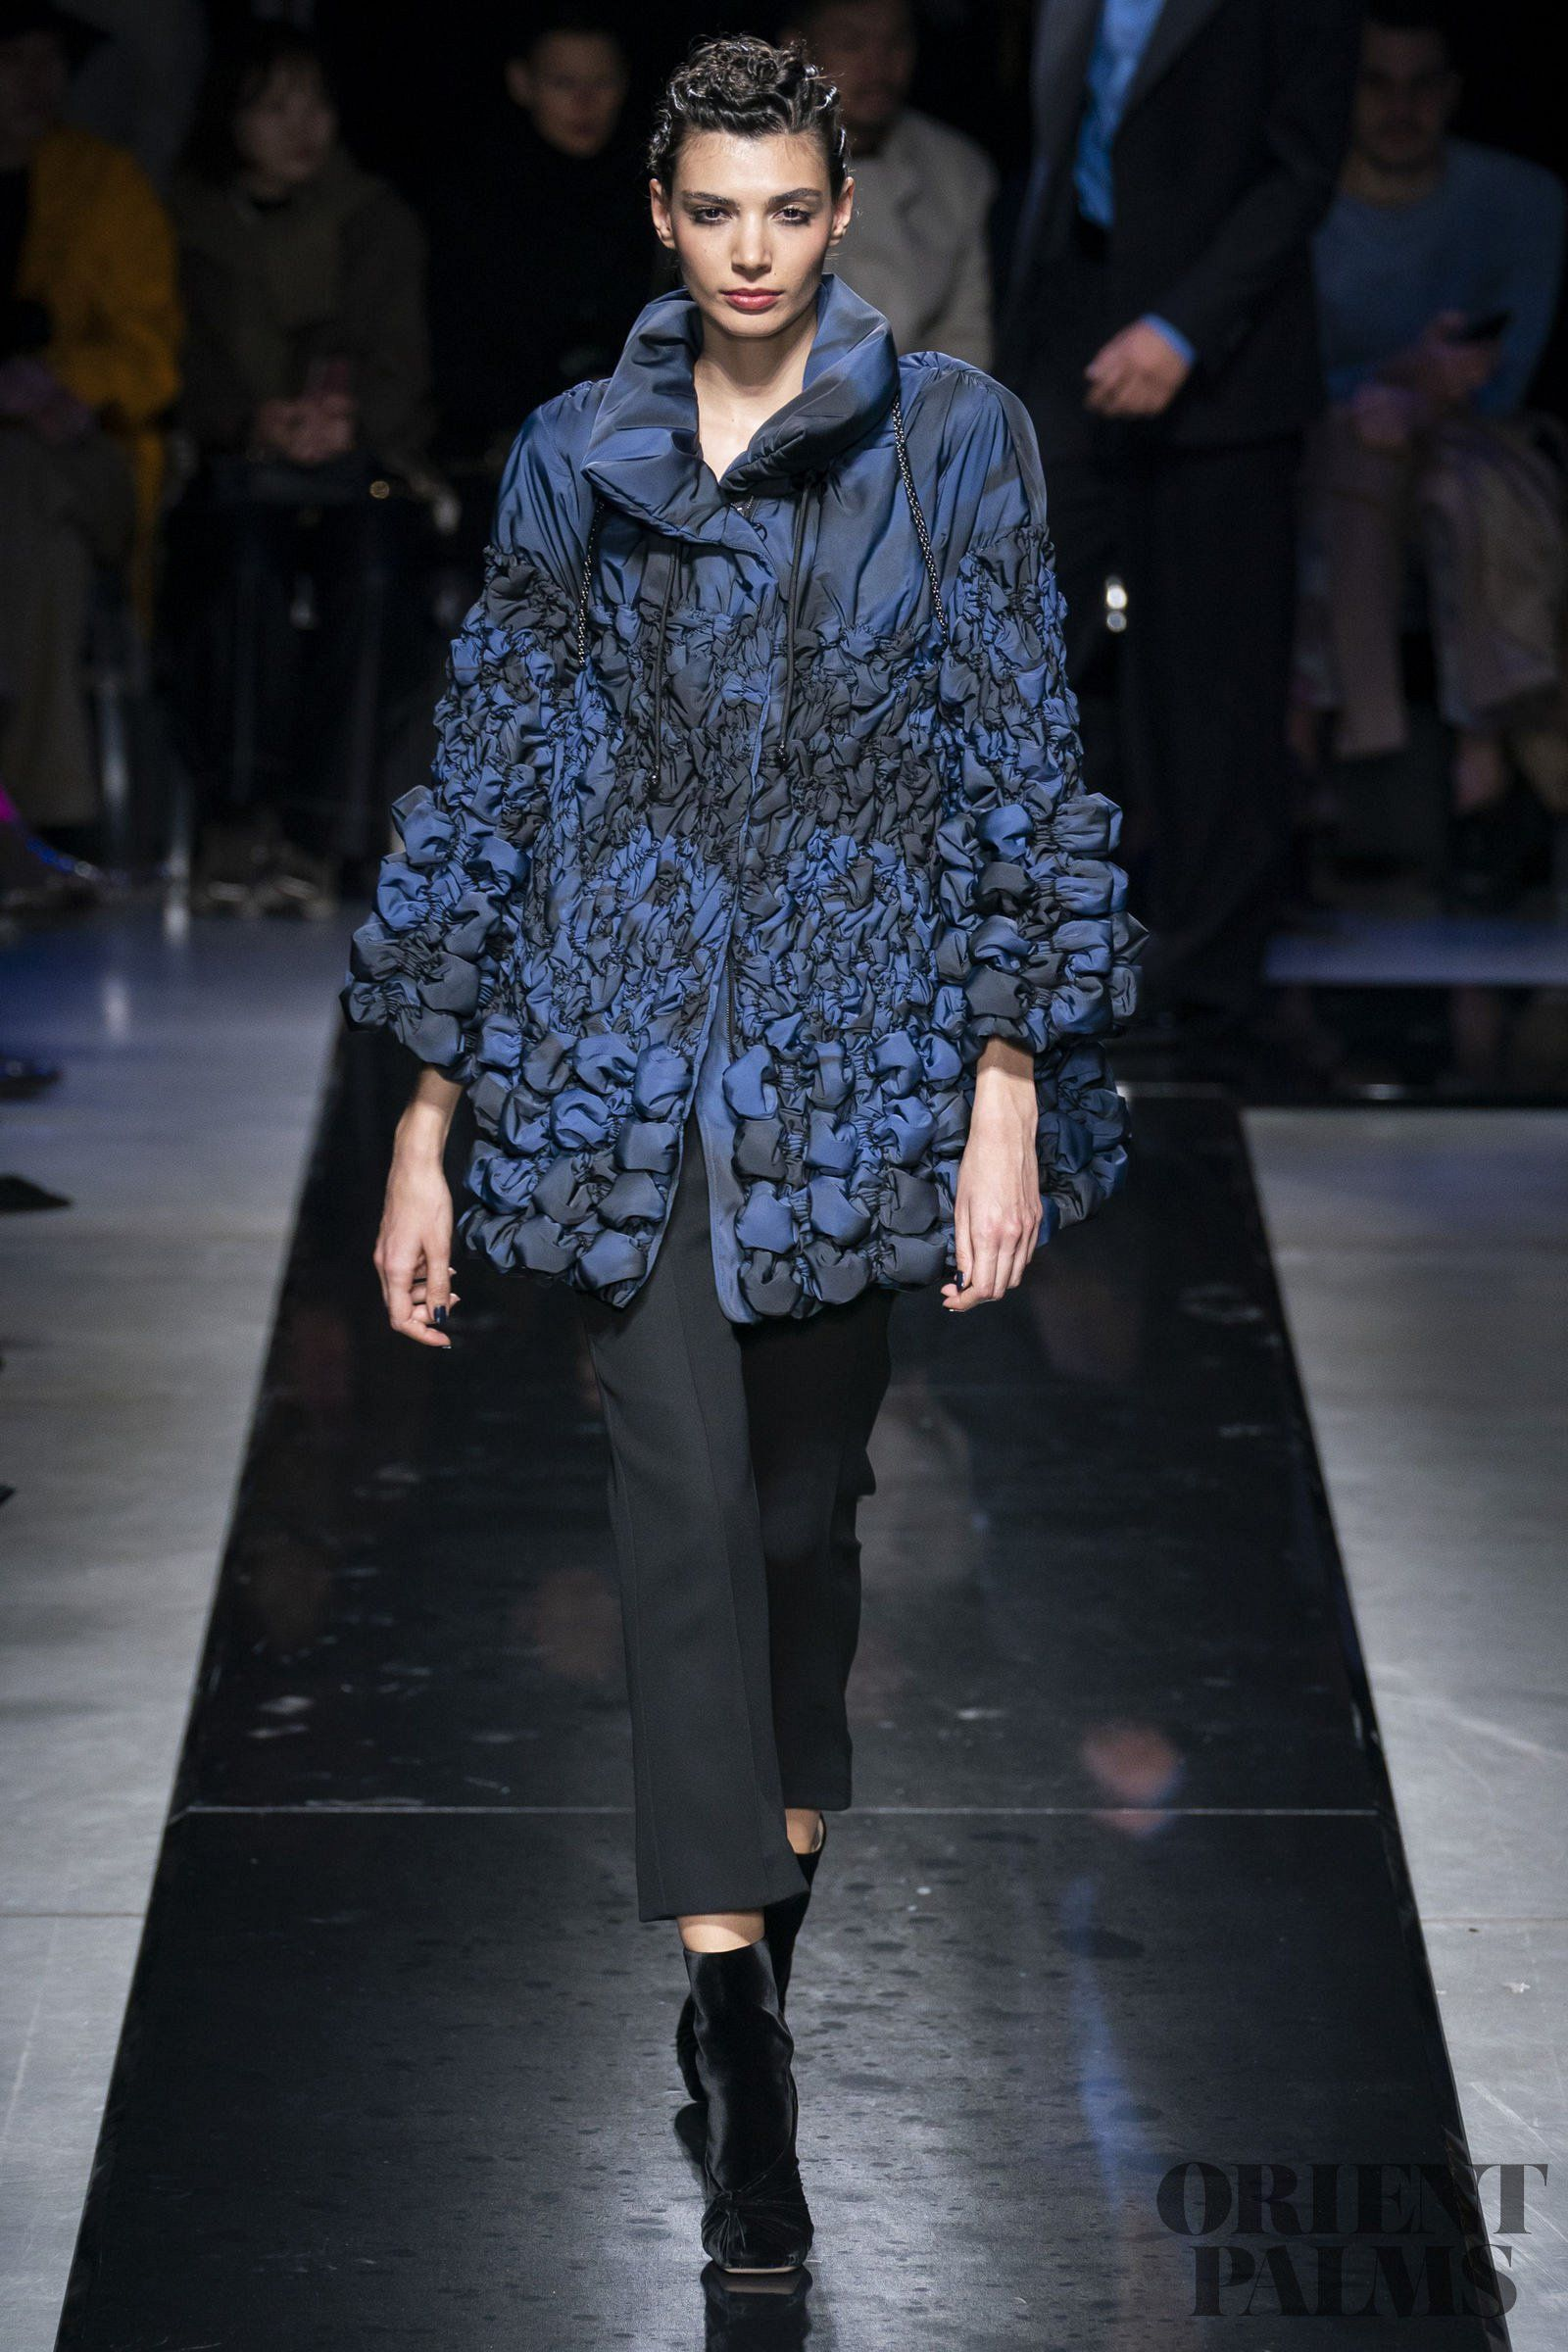 Urban Fashion 2020.Giorgio Armani Fall Winter 2019 2020 Ready To Wear In 2019